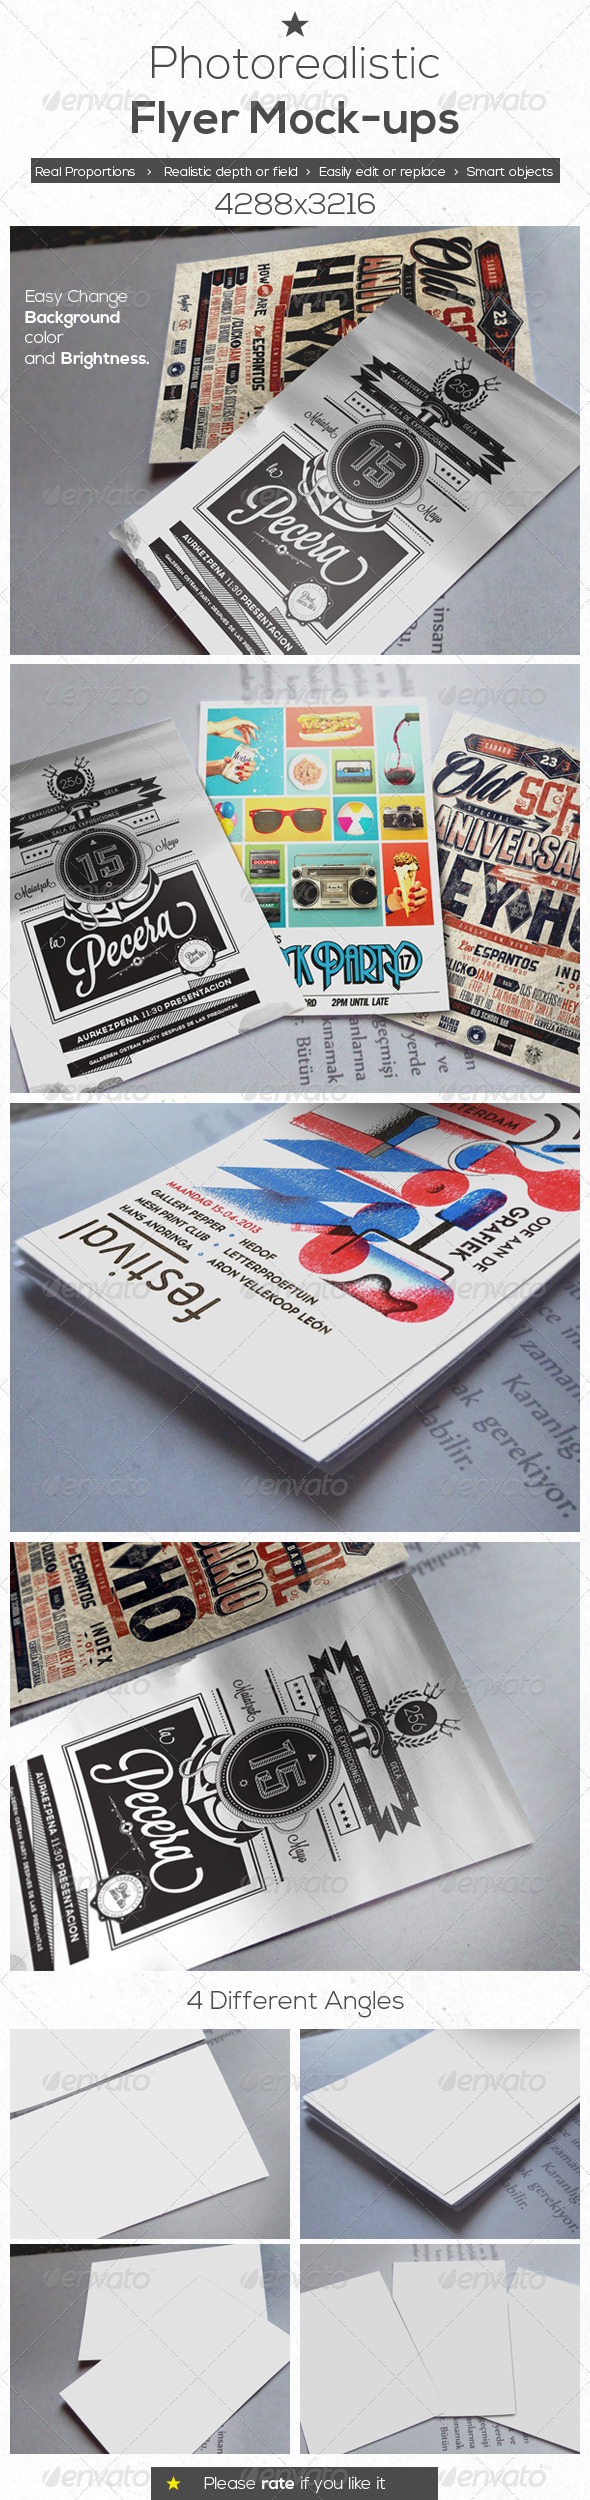 Photo Realistic Flyer Mock-Ups - Flyers Print